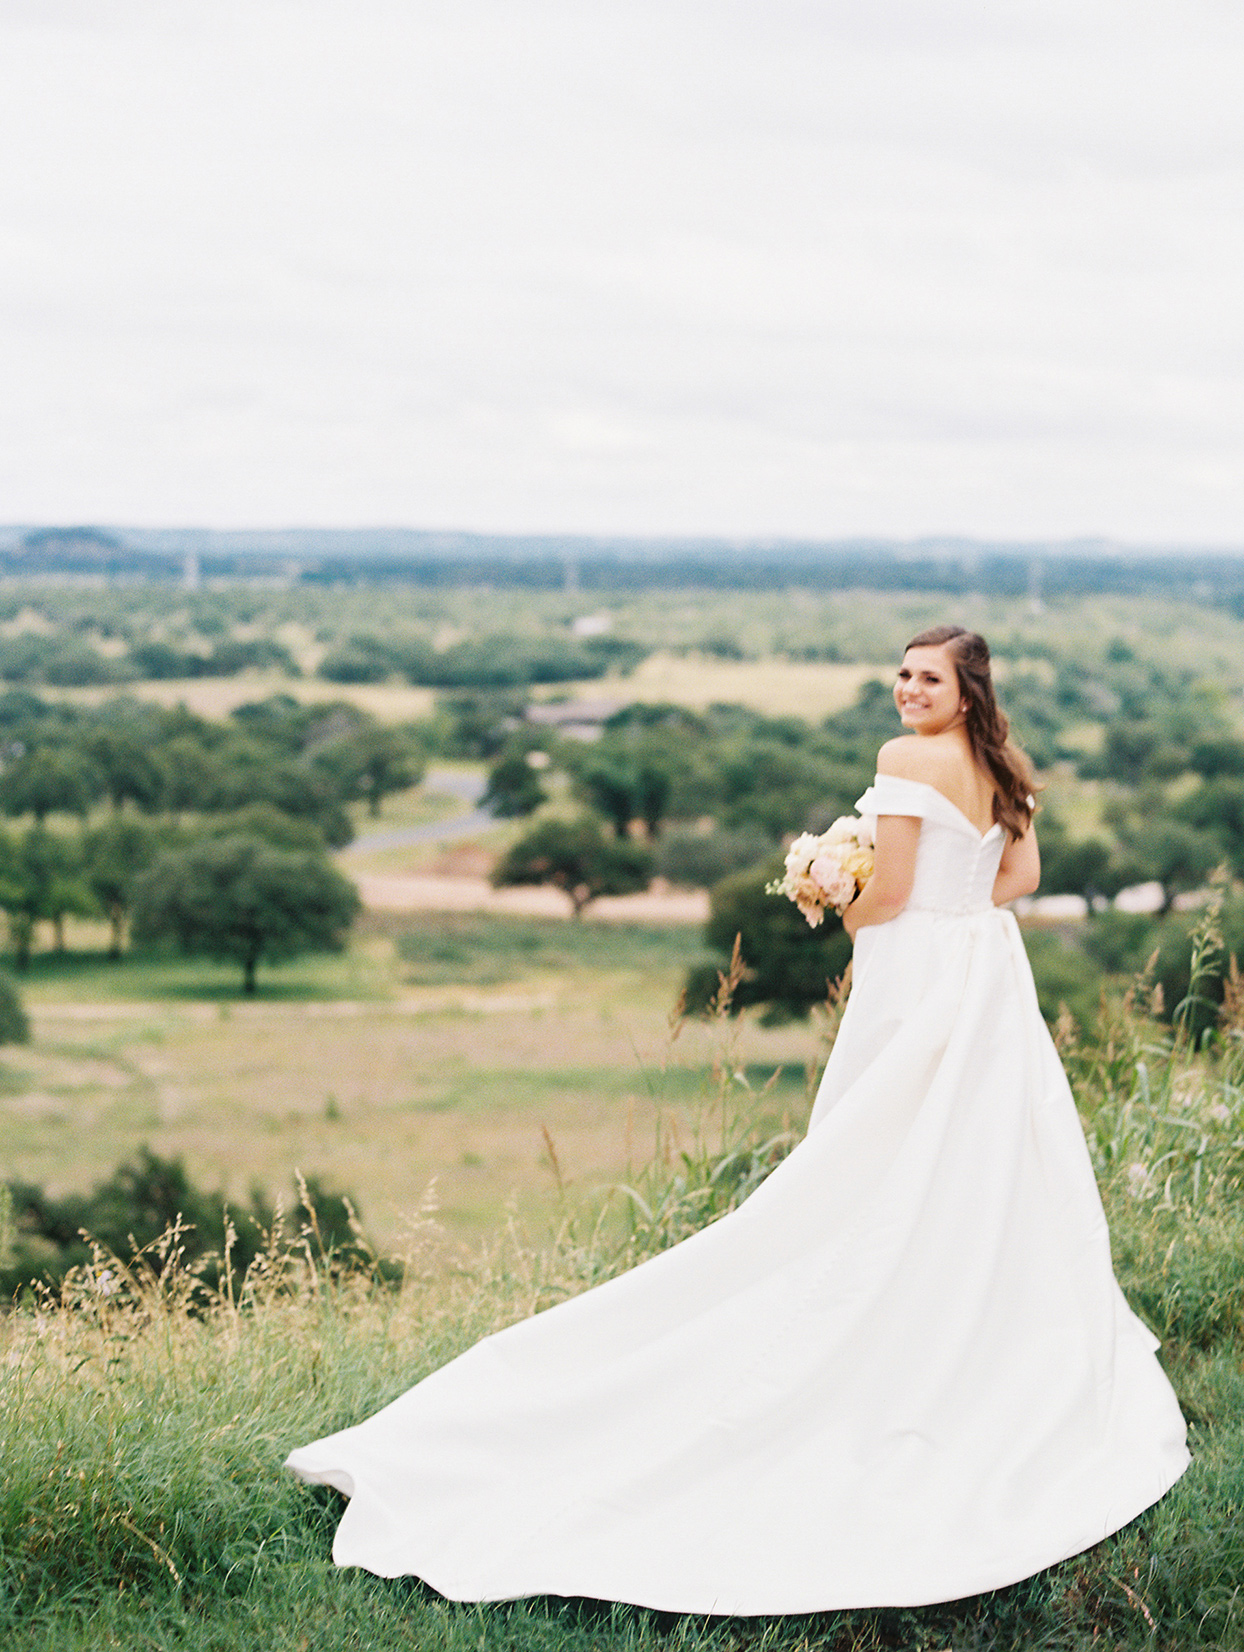 bride smiling looking back over her shoulder next to grassy hillside